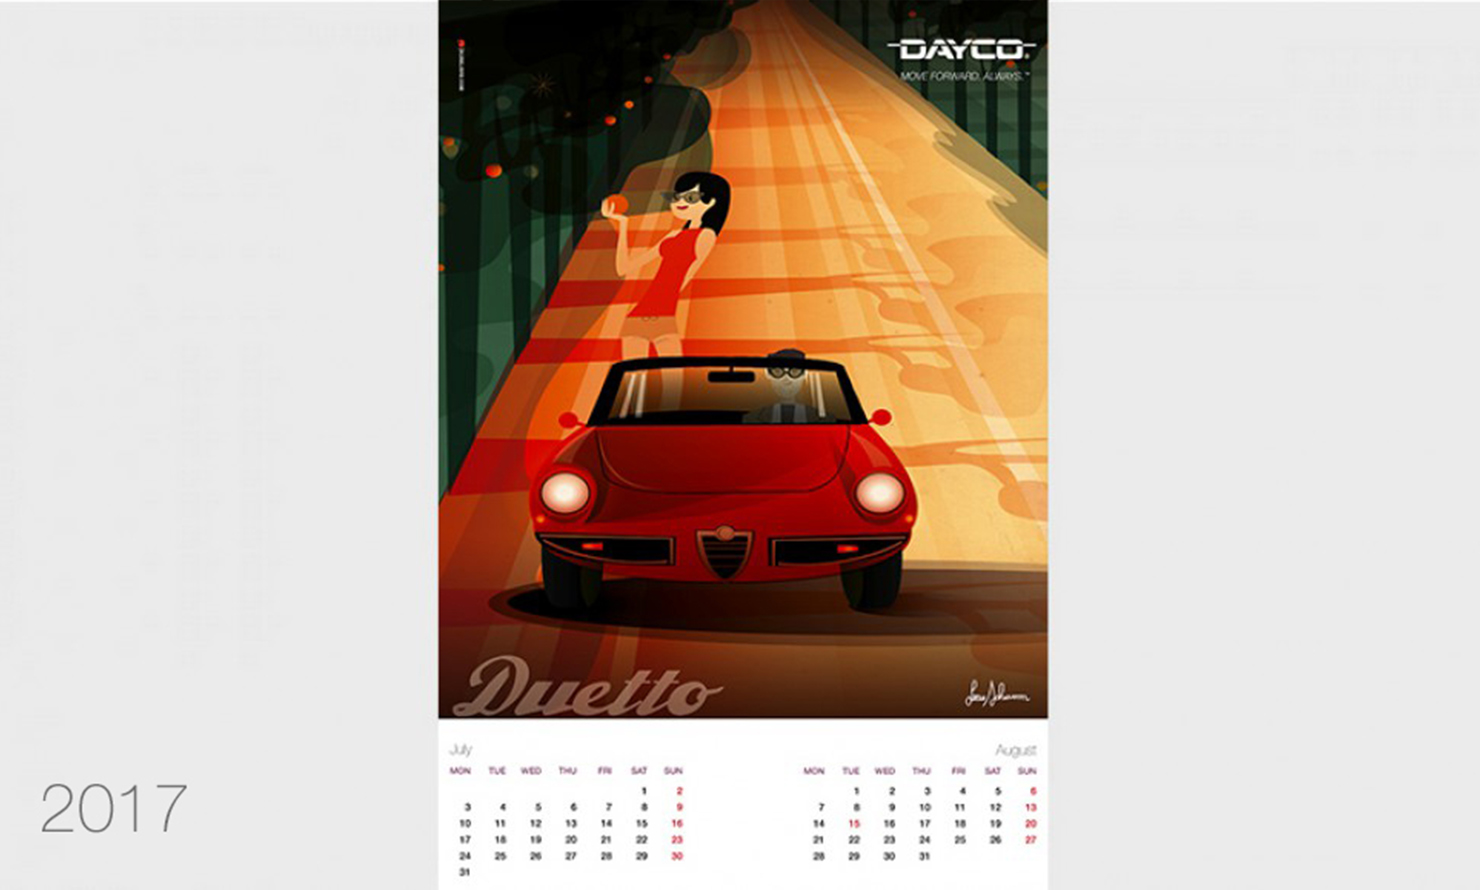 https://kubelibre.com/uploads/Slider-work-tutti-clienti/dayco-calendario-2017-4.jpg